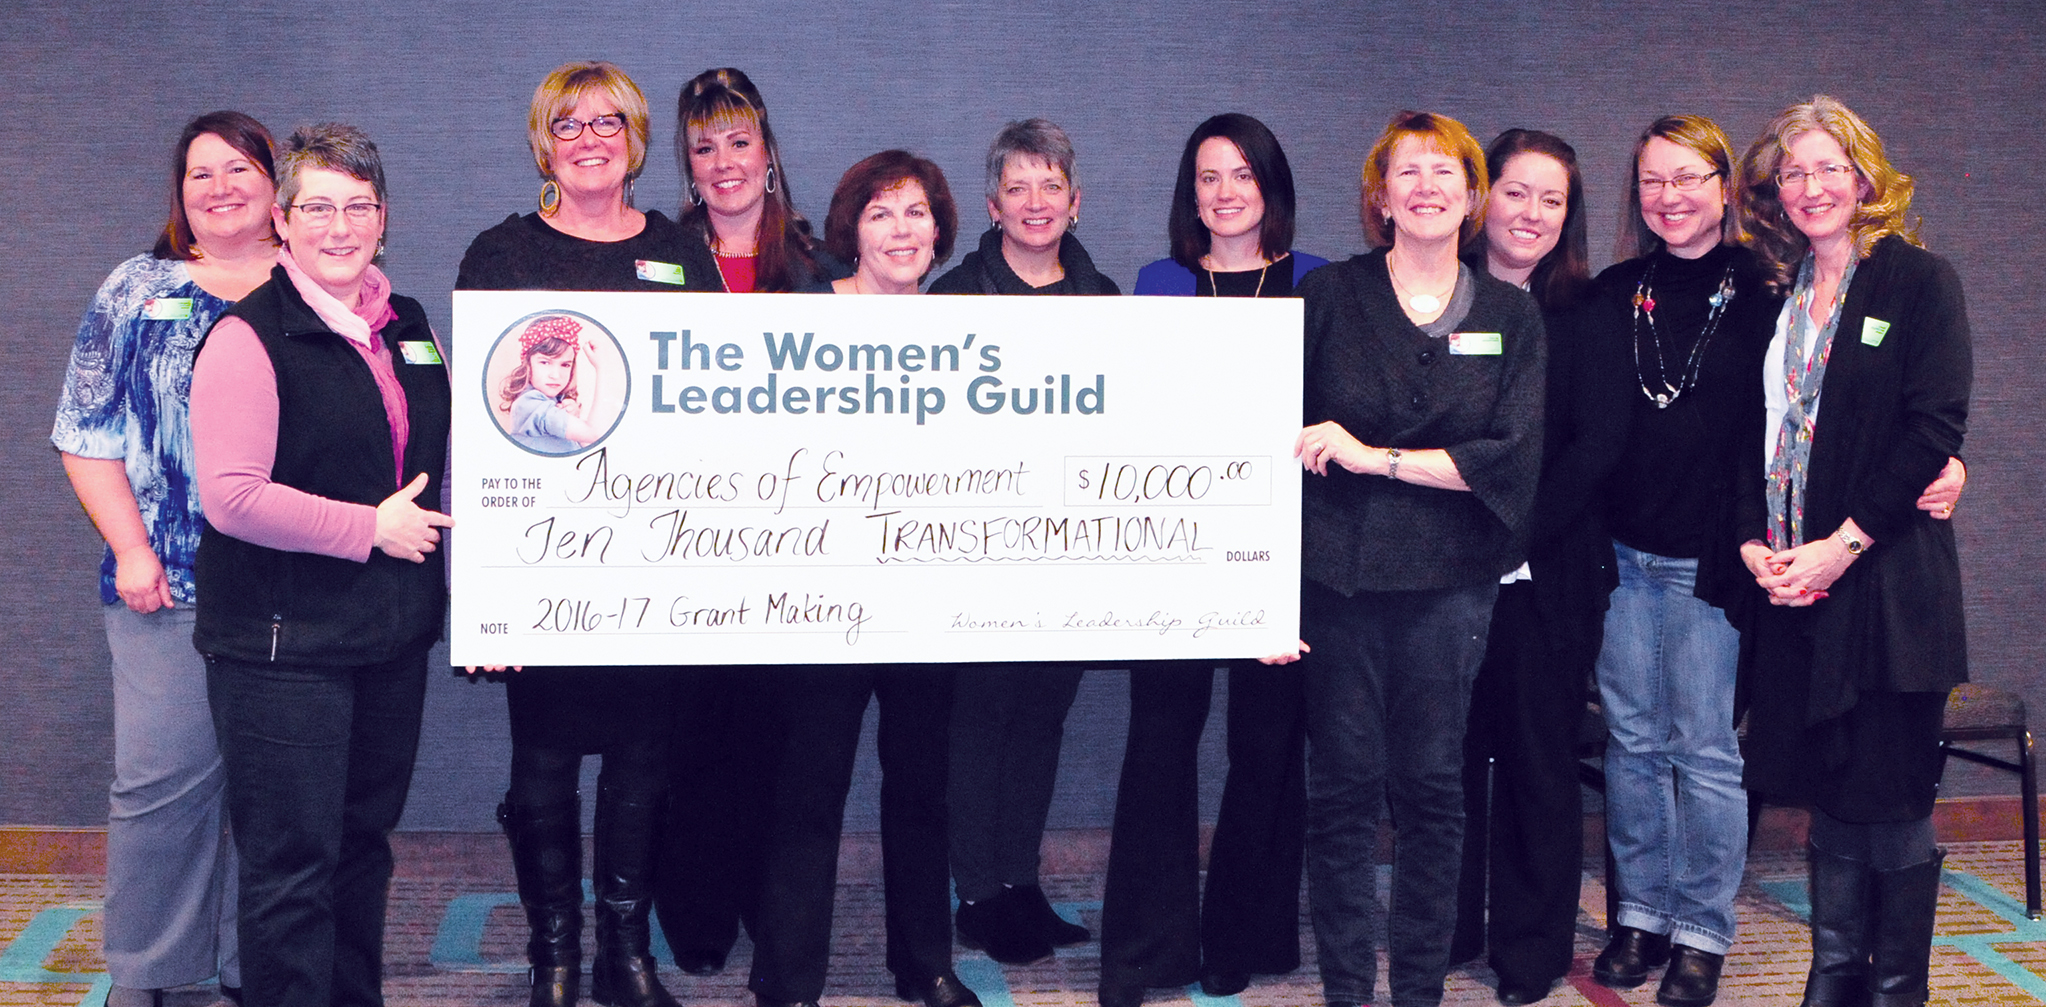 Women's Leadership Guild Passes $100,000 in fundraising